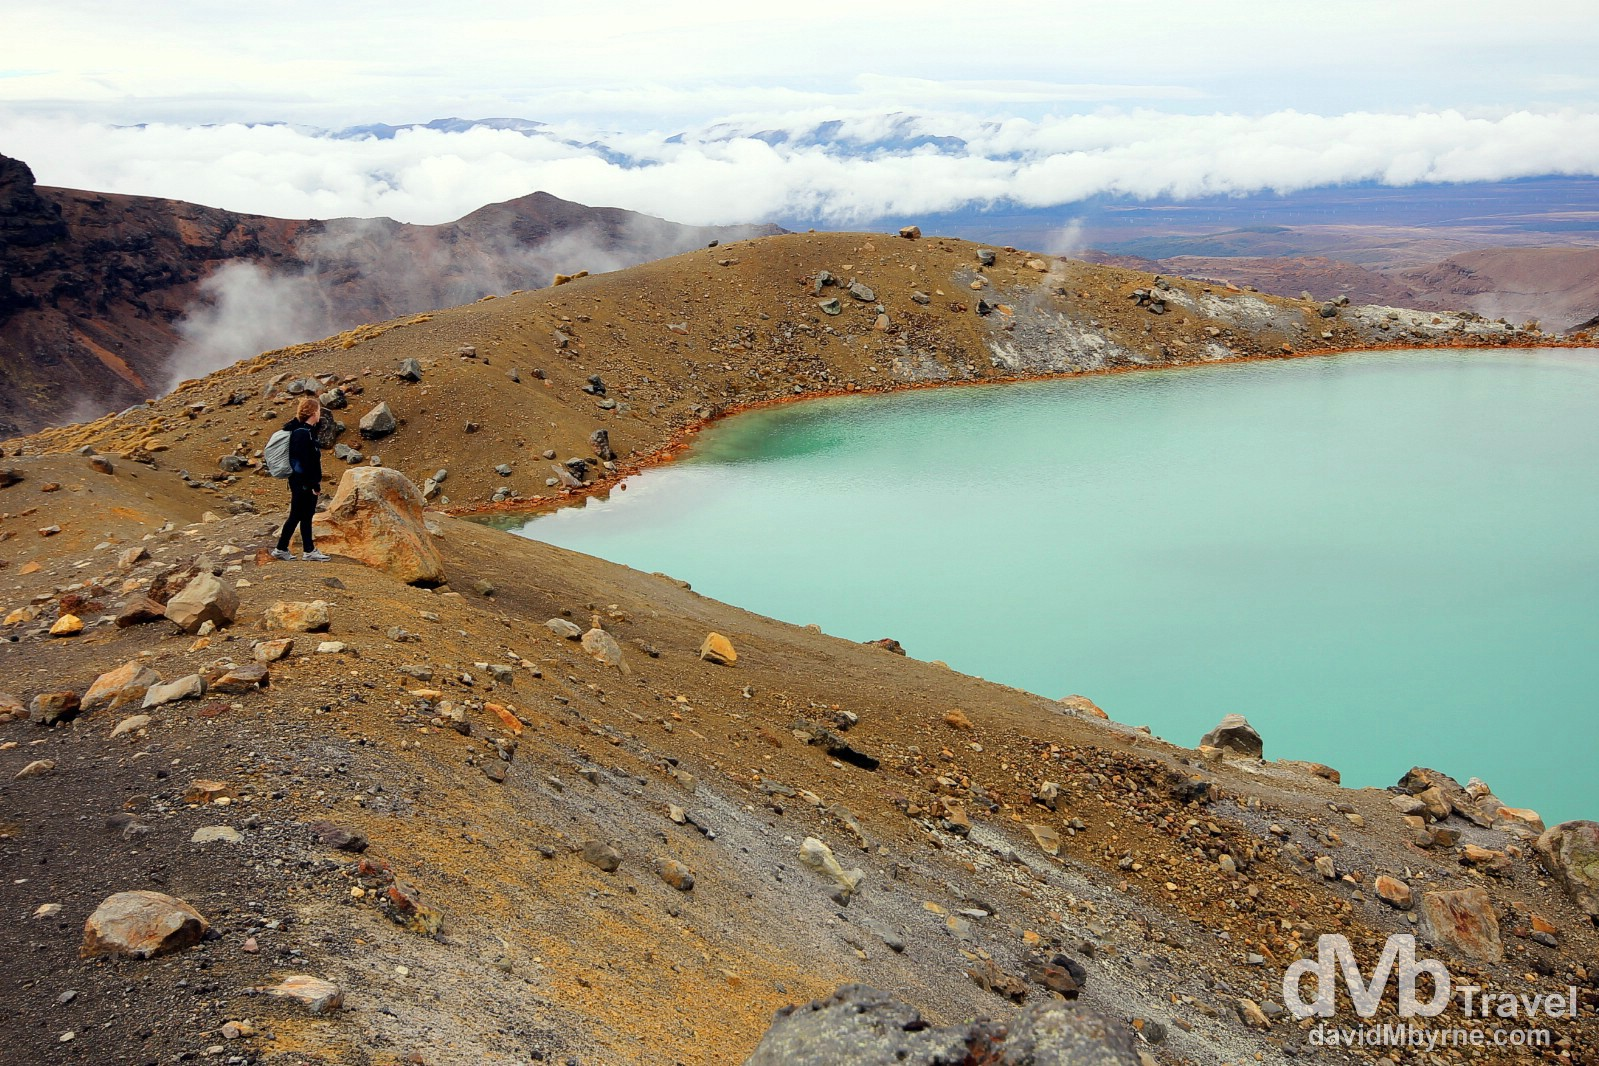 Standing by an emerald green volcanic lake in Tongariro National Park, North Island, New Zealand. May 9th 2012.